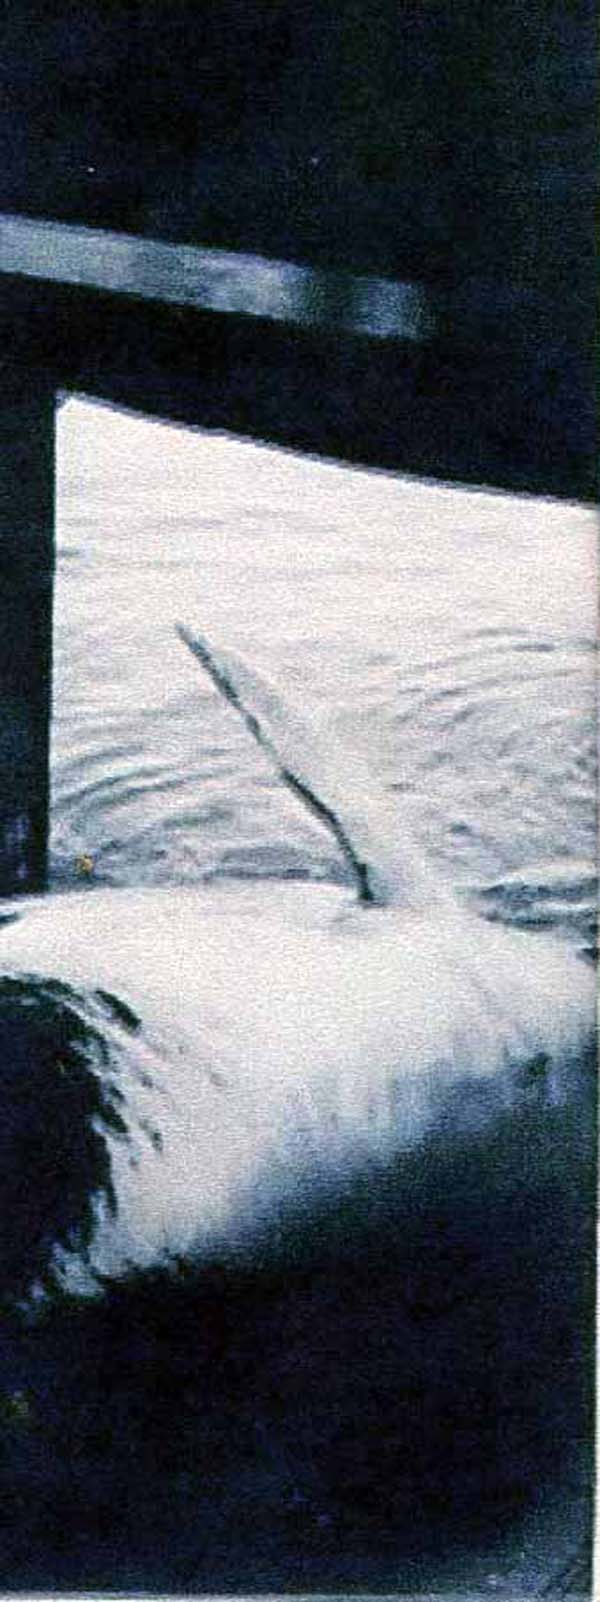 Winching Whale into Boat c.1937